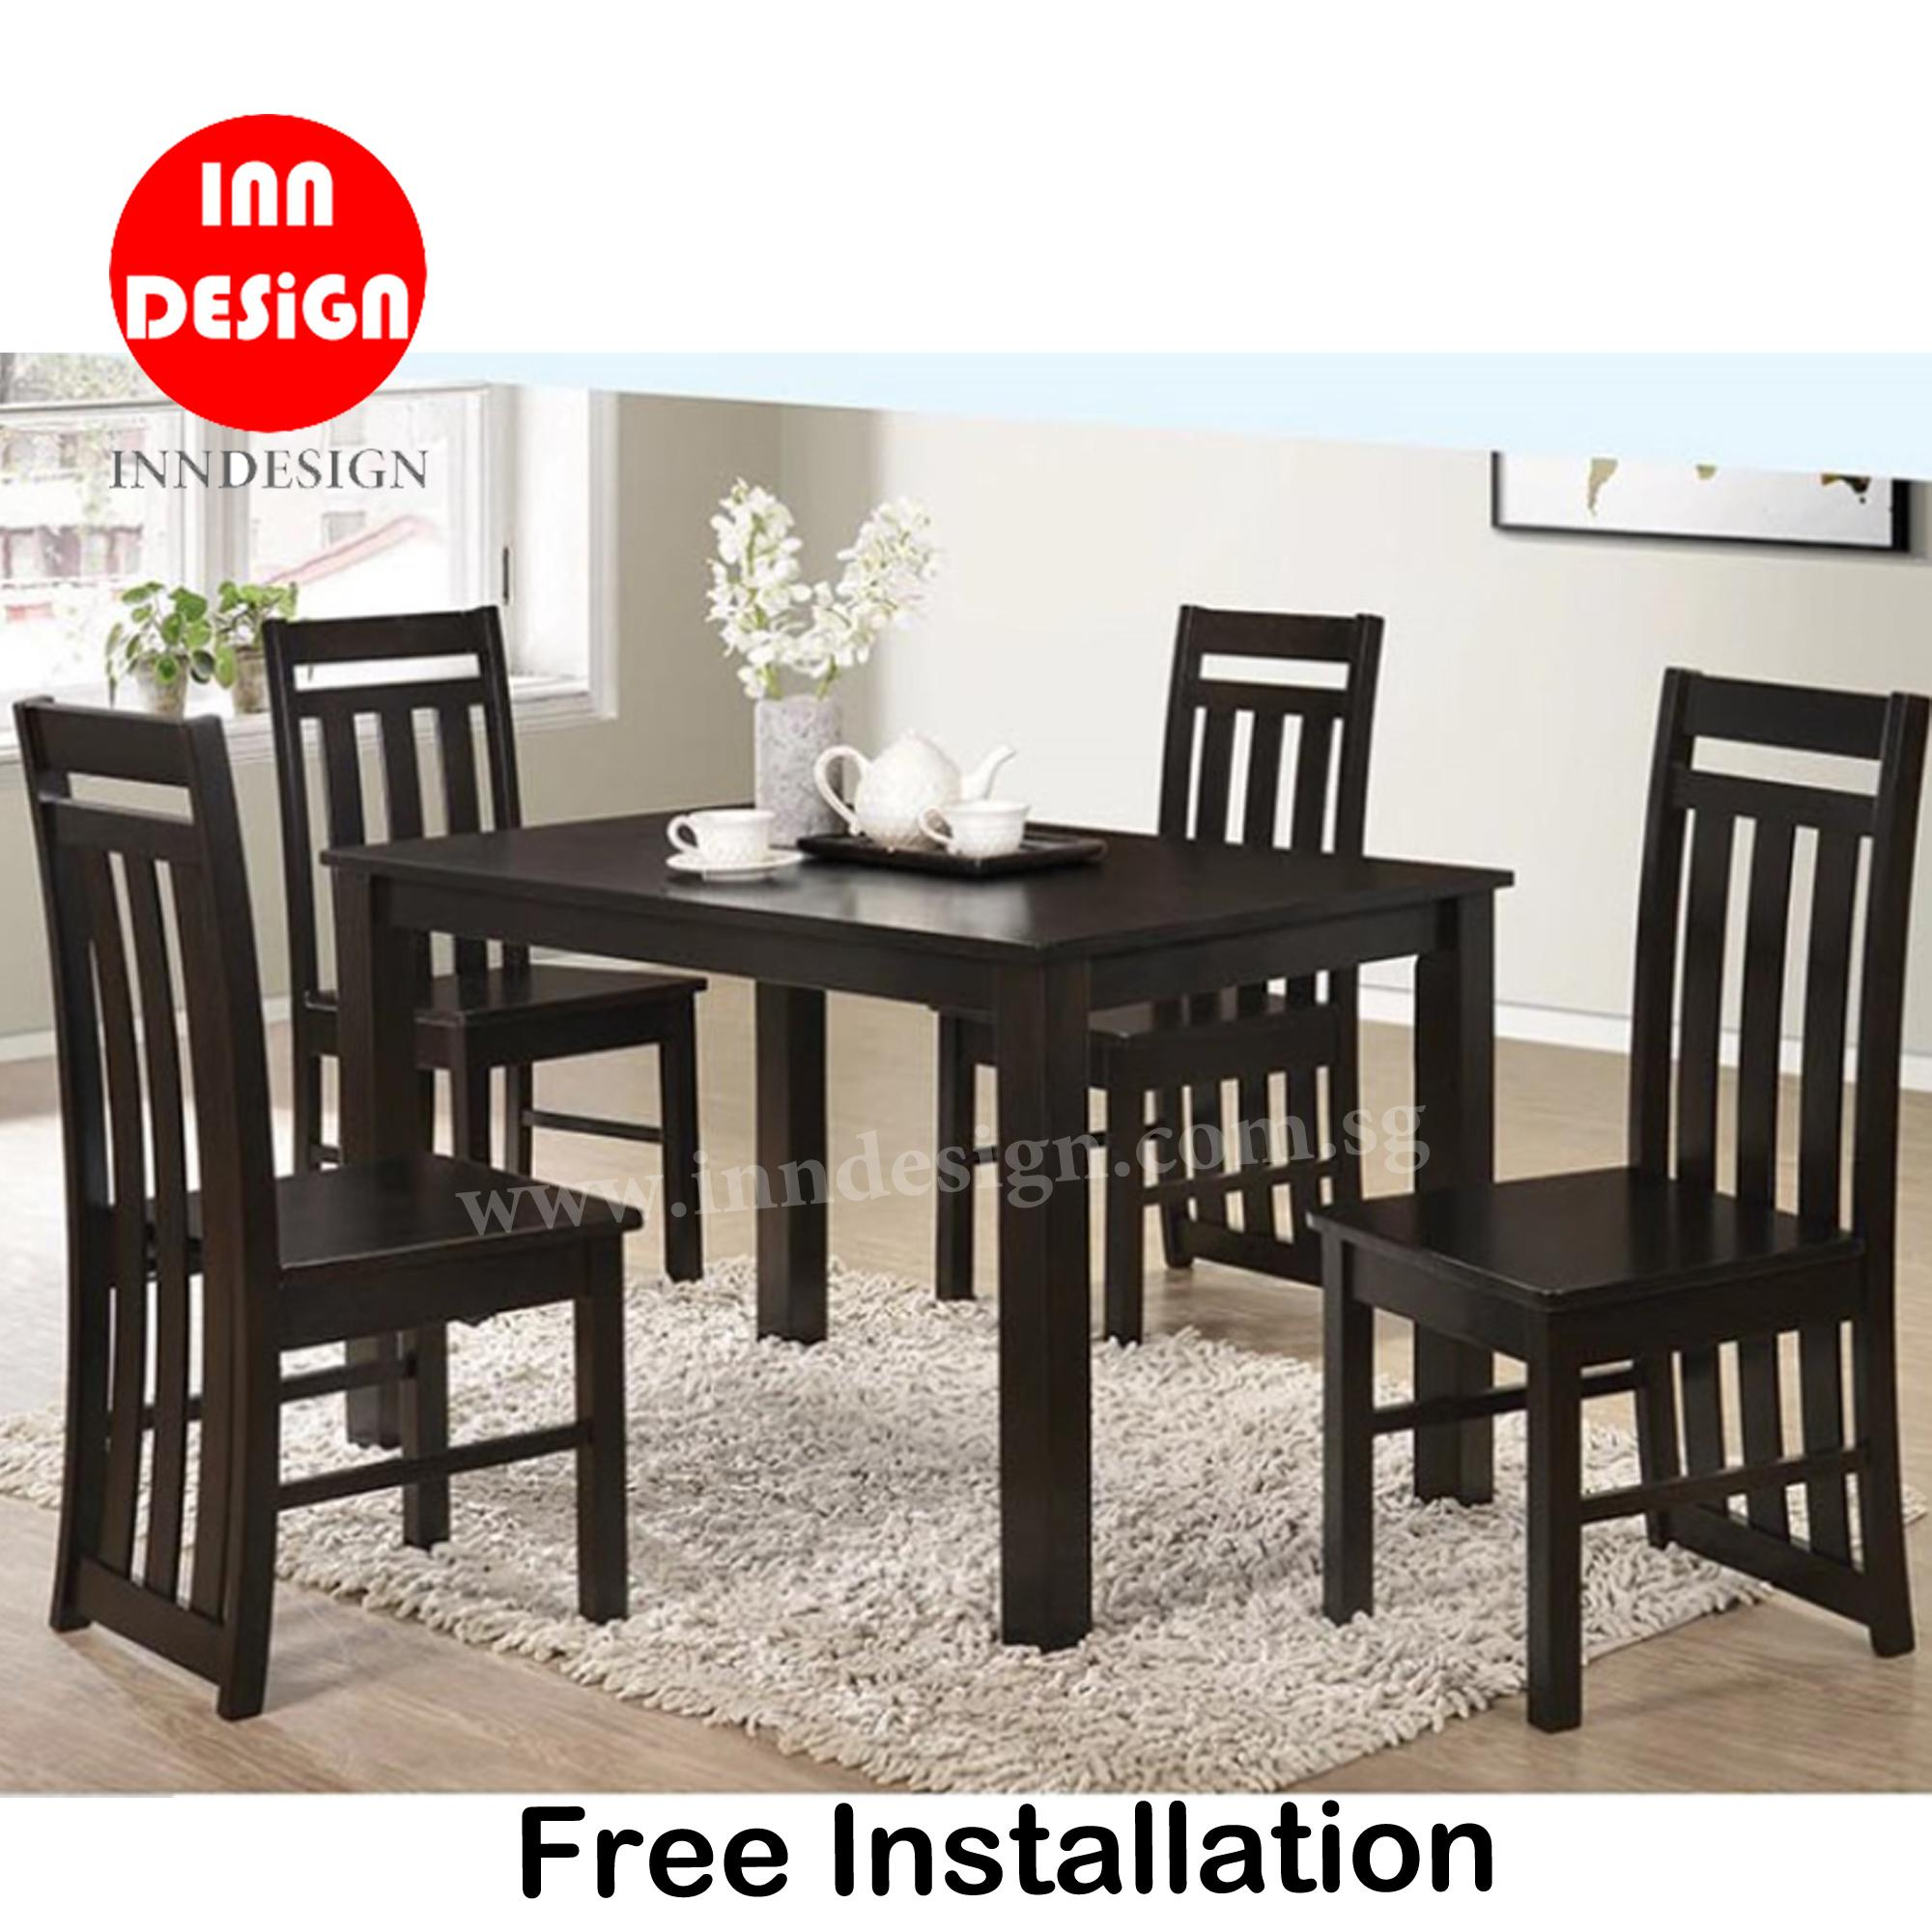 Edeline 1+4/1+6 Dining Set (Solid Wood) (Free Delivery and Installation)